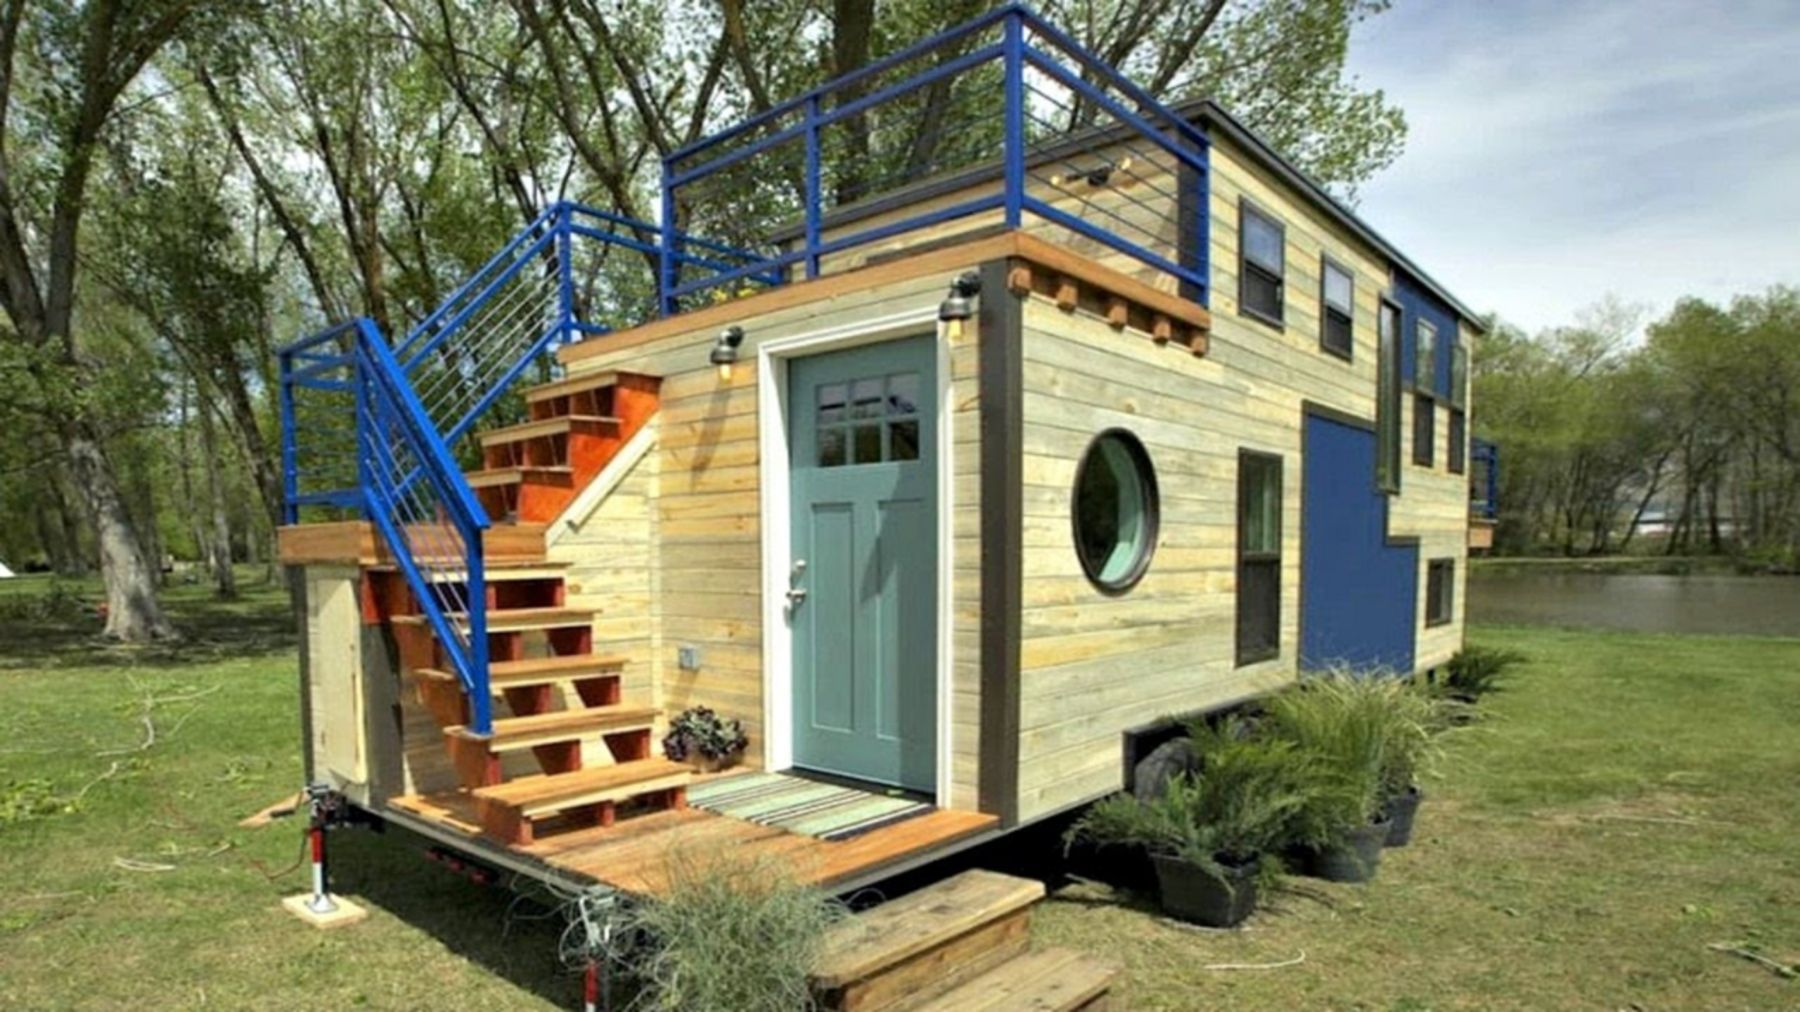 Awesome 20 Awesome Tiny House Trailer Design Ideas For Your Inspiration Https Freedsgn Com 20 Awes Tiny House Trailer Small House Trailer Small House Design